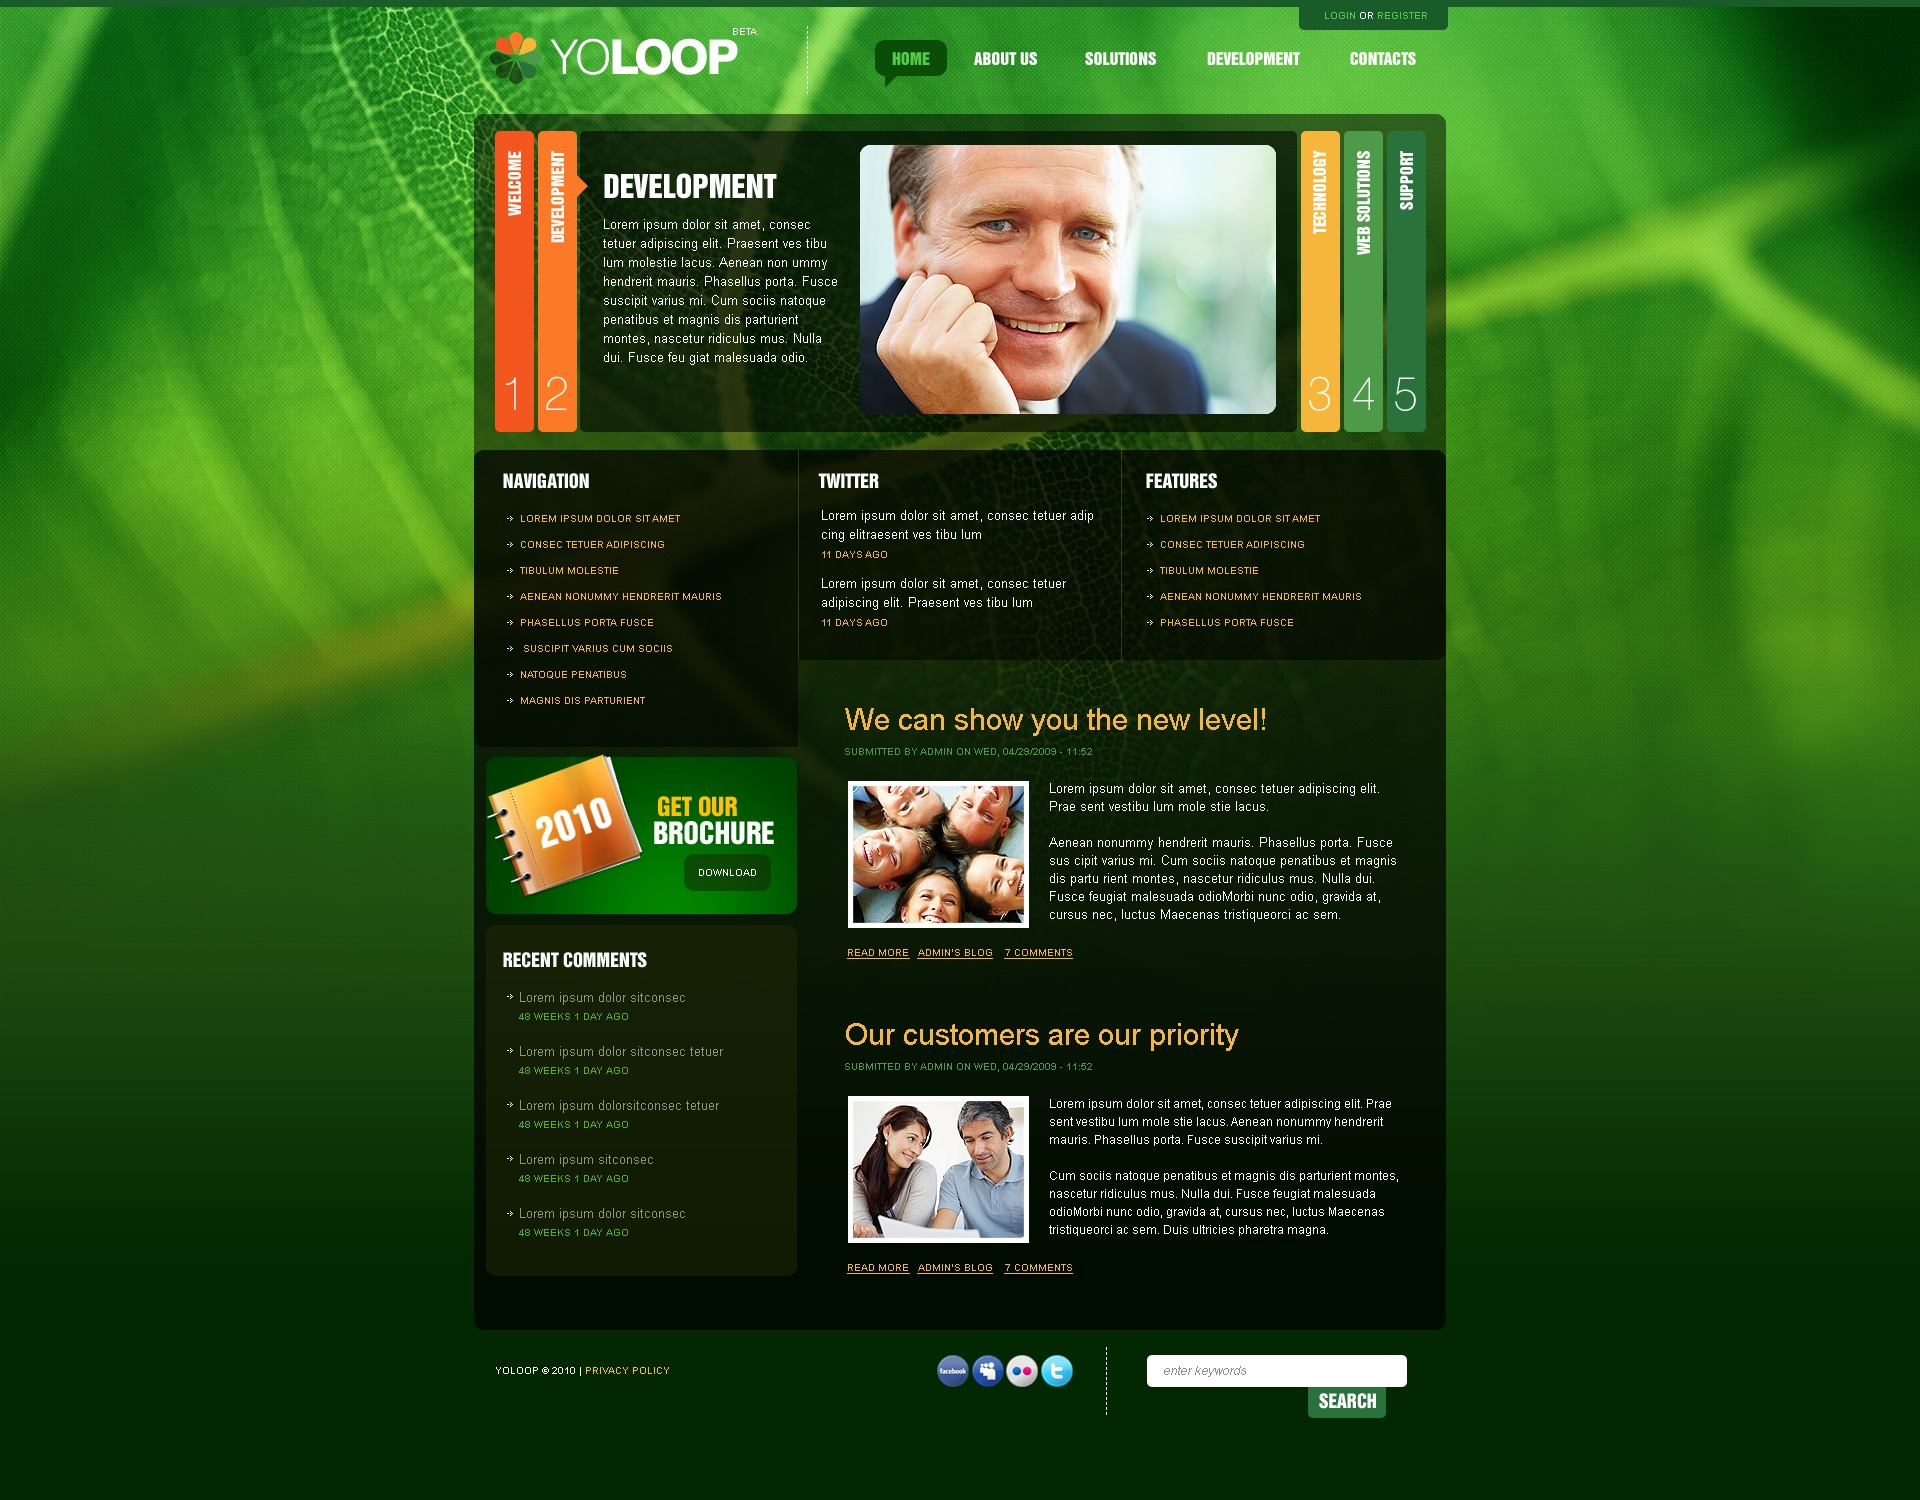 The Yoloop Business Company PSD Design 54488, one of the best PSD templates of its kind (business, wide, jquery), also known as yoloop business company PSD template, corporate solutions PSD template, innovations PSD template, contacts PSD template, service PSD template, support PSD template, information dealer PSD template, stocks PSD template, team PSD template, success PSD template, money PSD template, marketing PSD template, director PSD template, manager PSD template, analytics PSD template, planning PSD template, limited PSD template, office PSD template, sales and related with yoloop business company, corporate solutions, innovations, contacts, service, support, information dealer, stocks, team, success, money, marketing, director, manager, analytics, planning, limited, office, sales, etc.